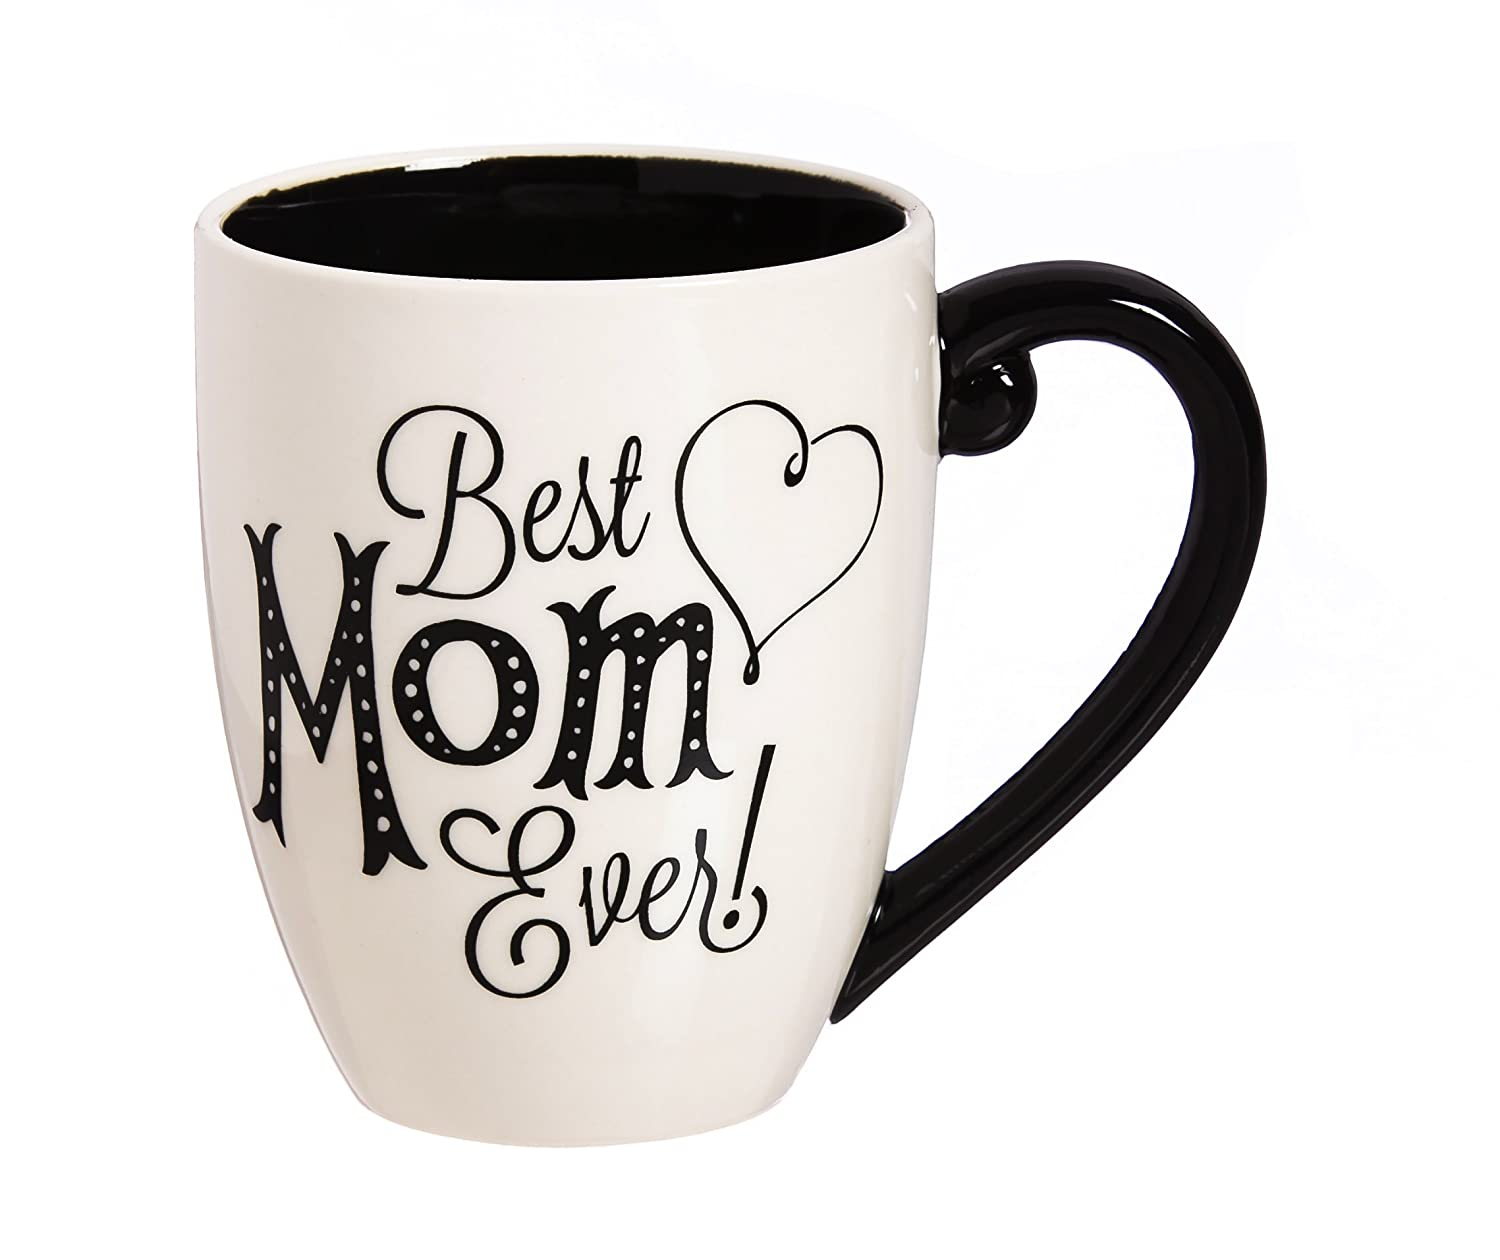 "Cypress Home Black Ink Best Mom Ever 18 oz Ceramic Cup O/' Joe Coffee Mug or Tea Cup 4/""W x 5.75/""D x 5/""H"